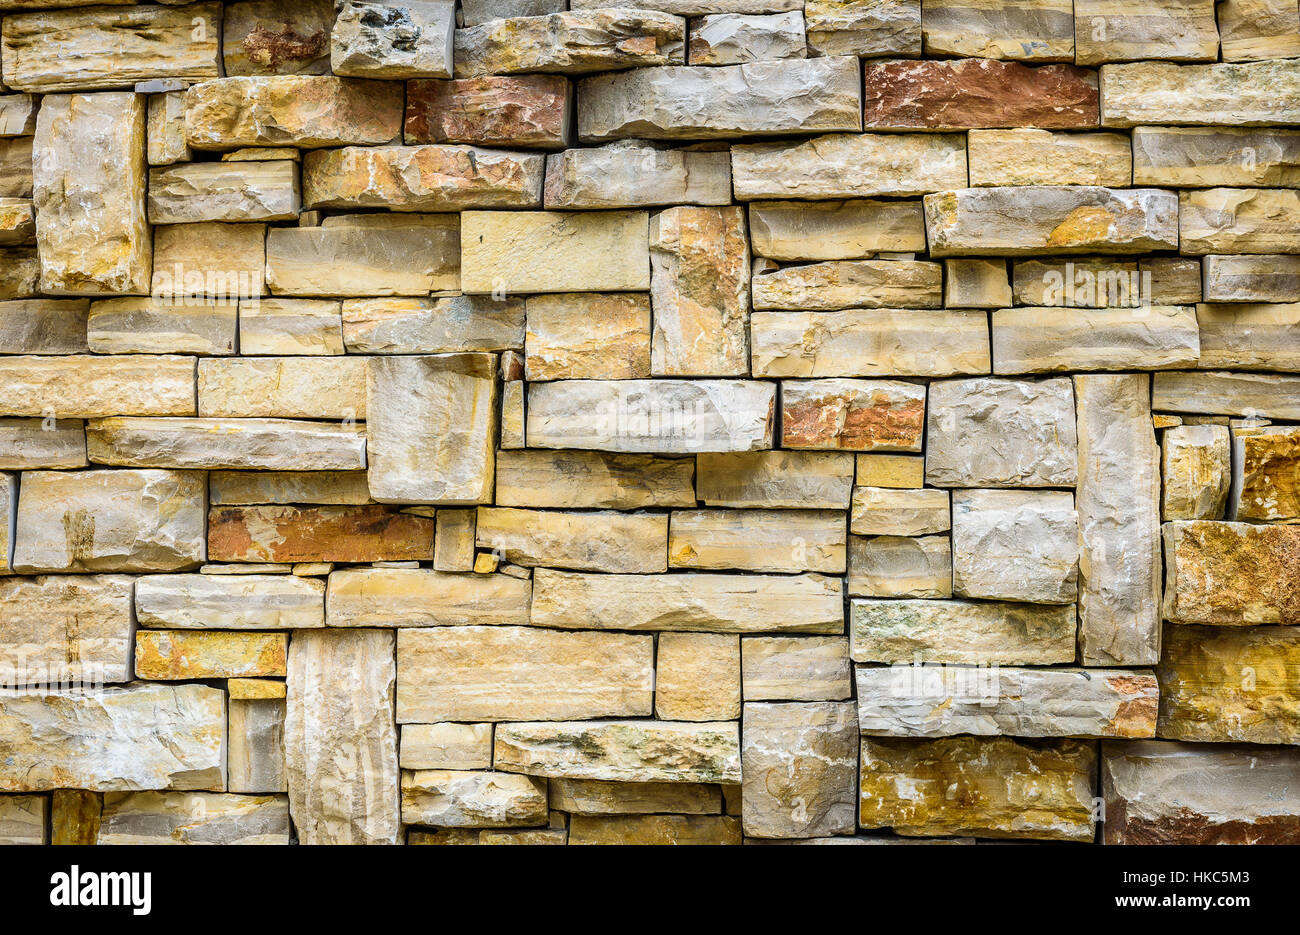 Modern pattern natural stone brick decorative wall texture for stock photo royalty free image - Flaunt your natural stone wall finishes ...